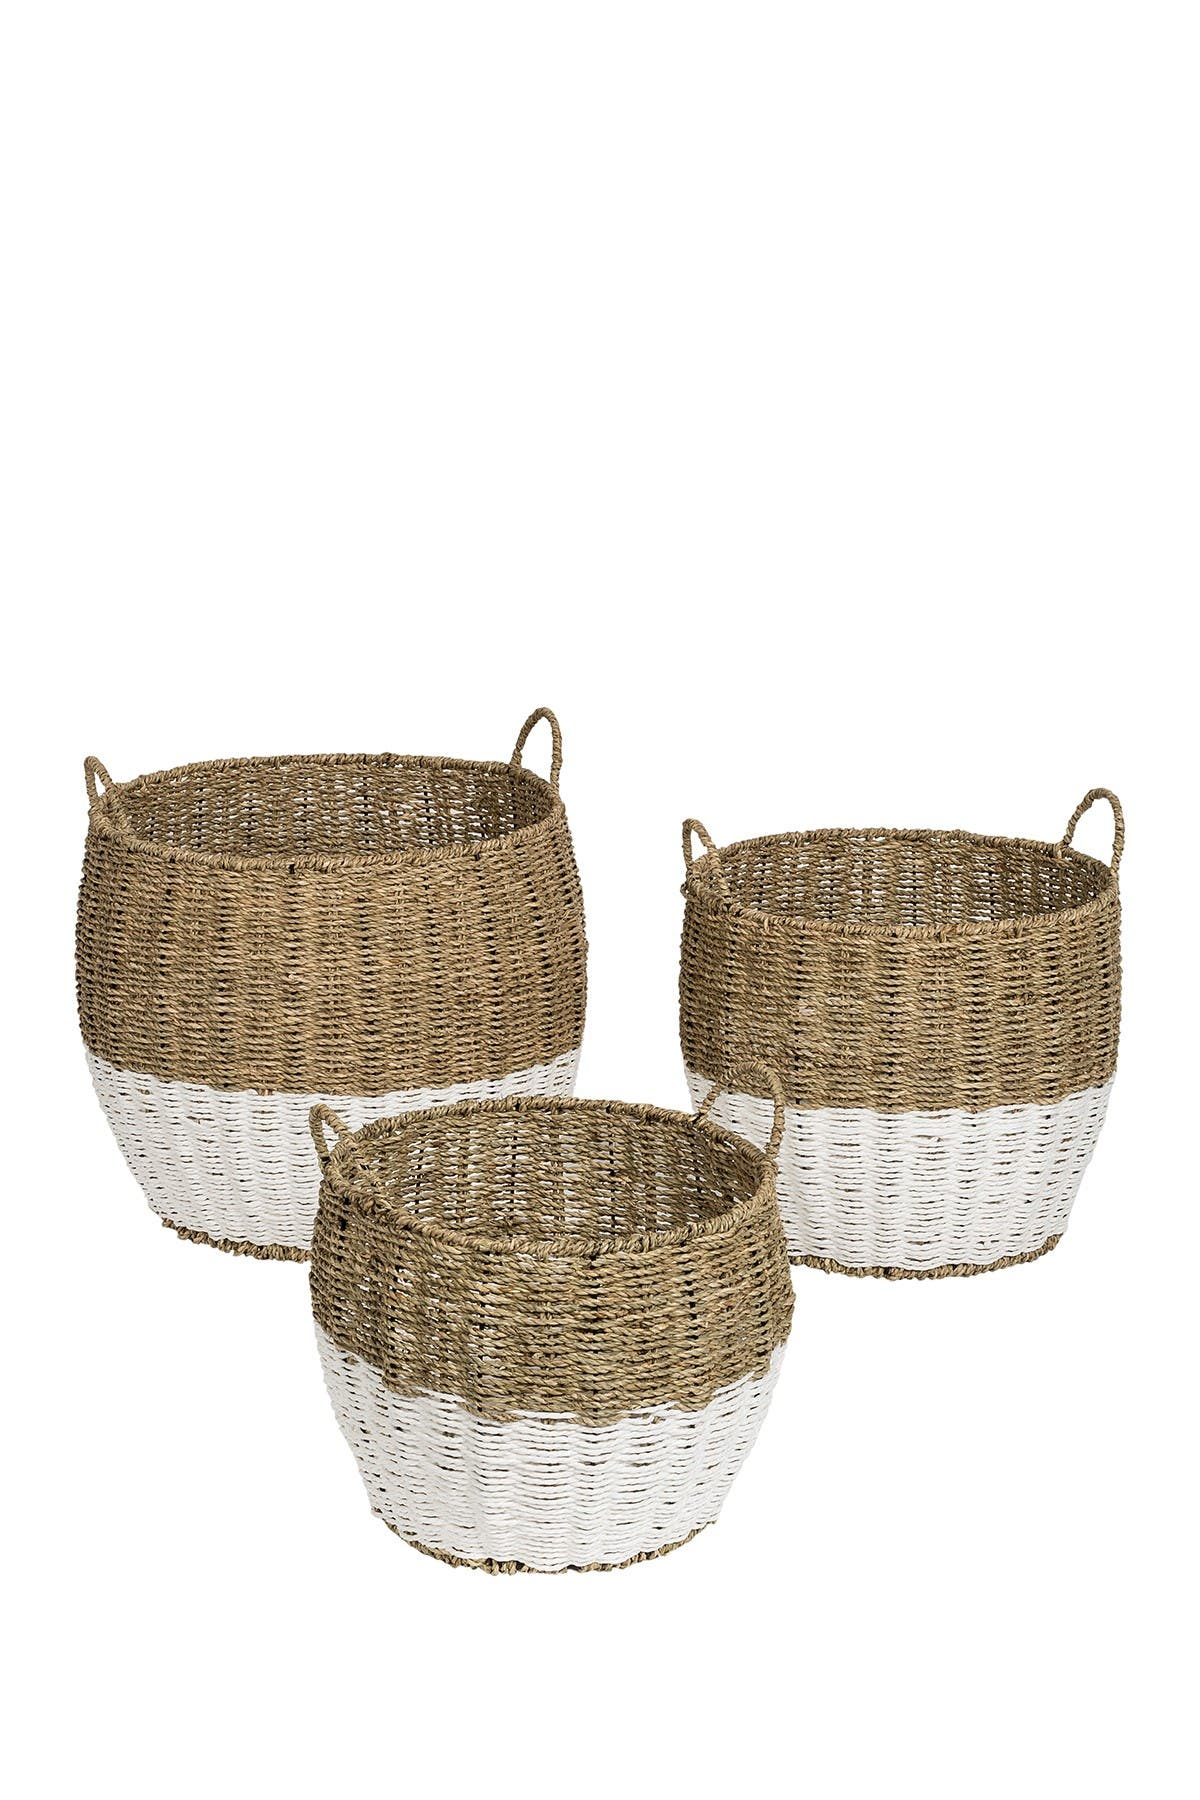 Image of Honey-Can-Do Natural/White Round Seagrass Baskets - Set of 3